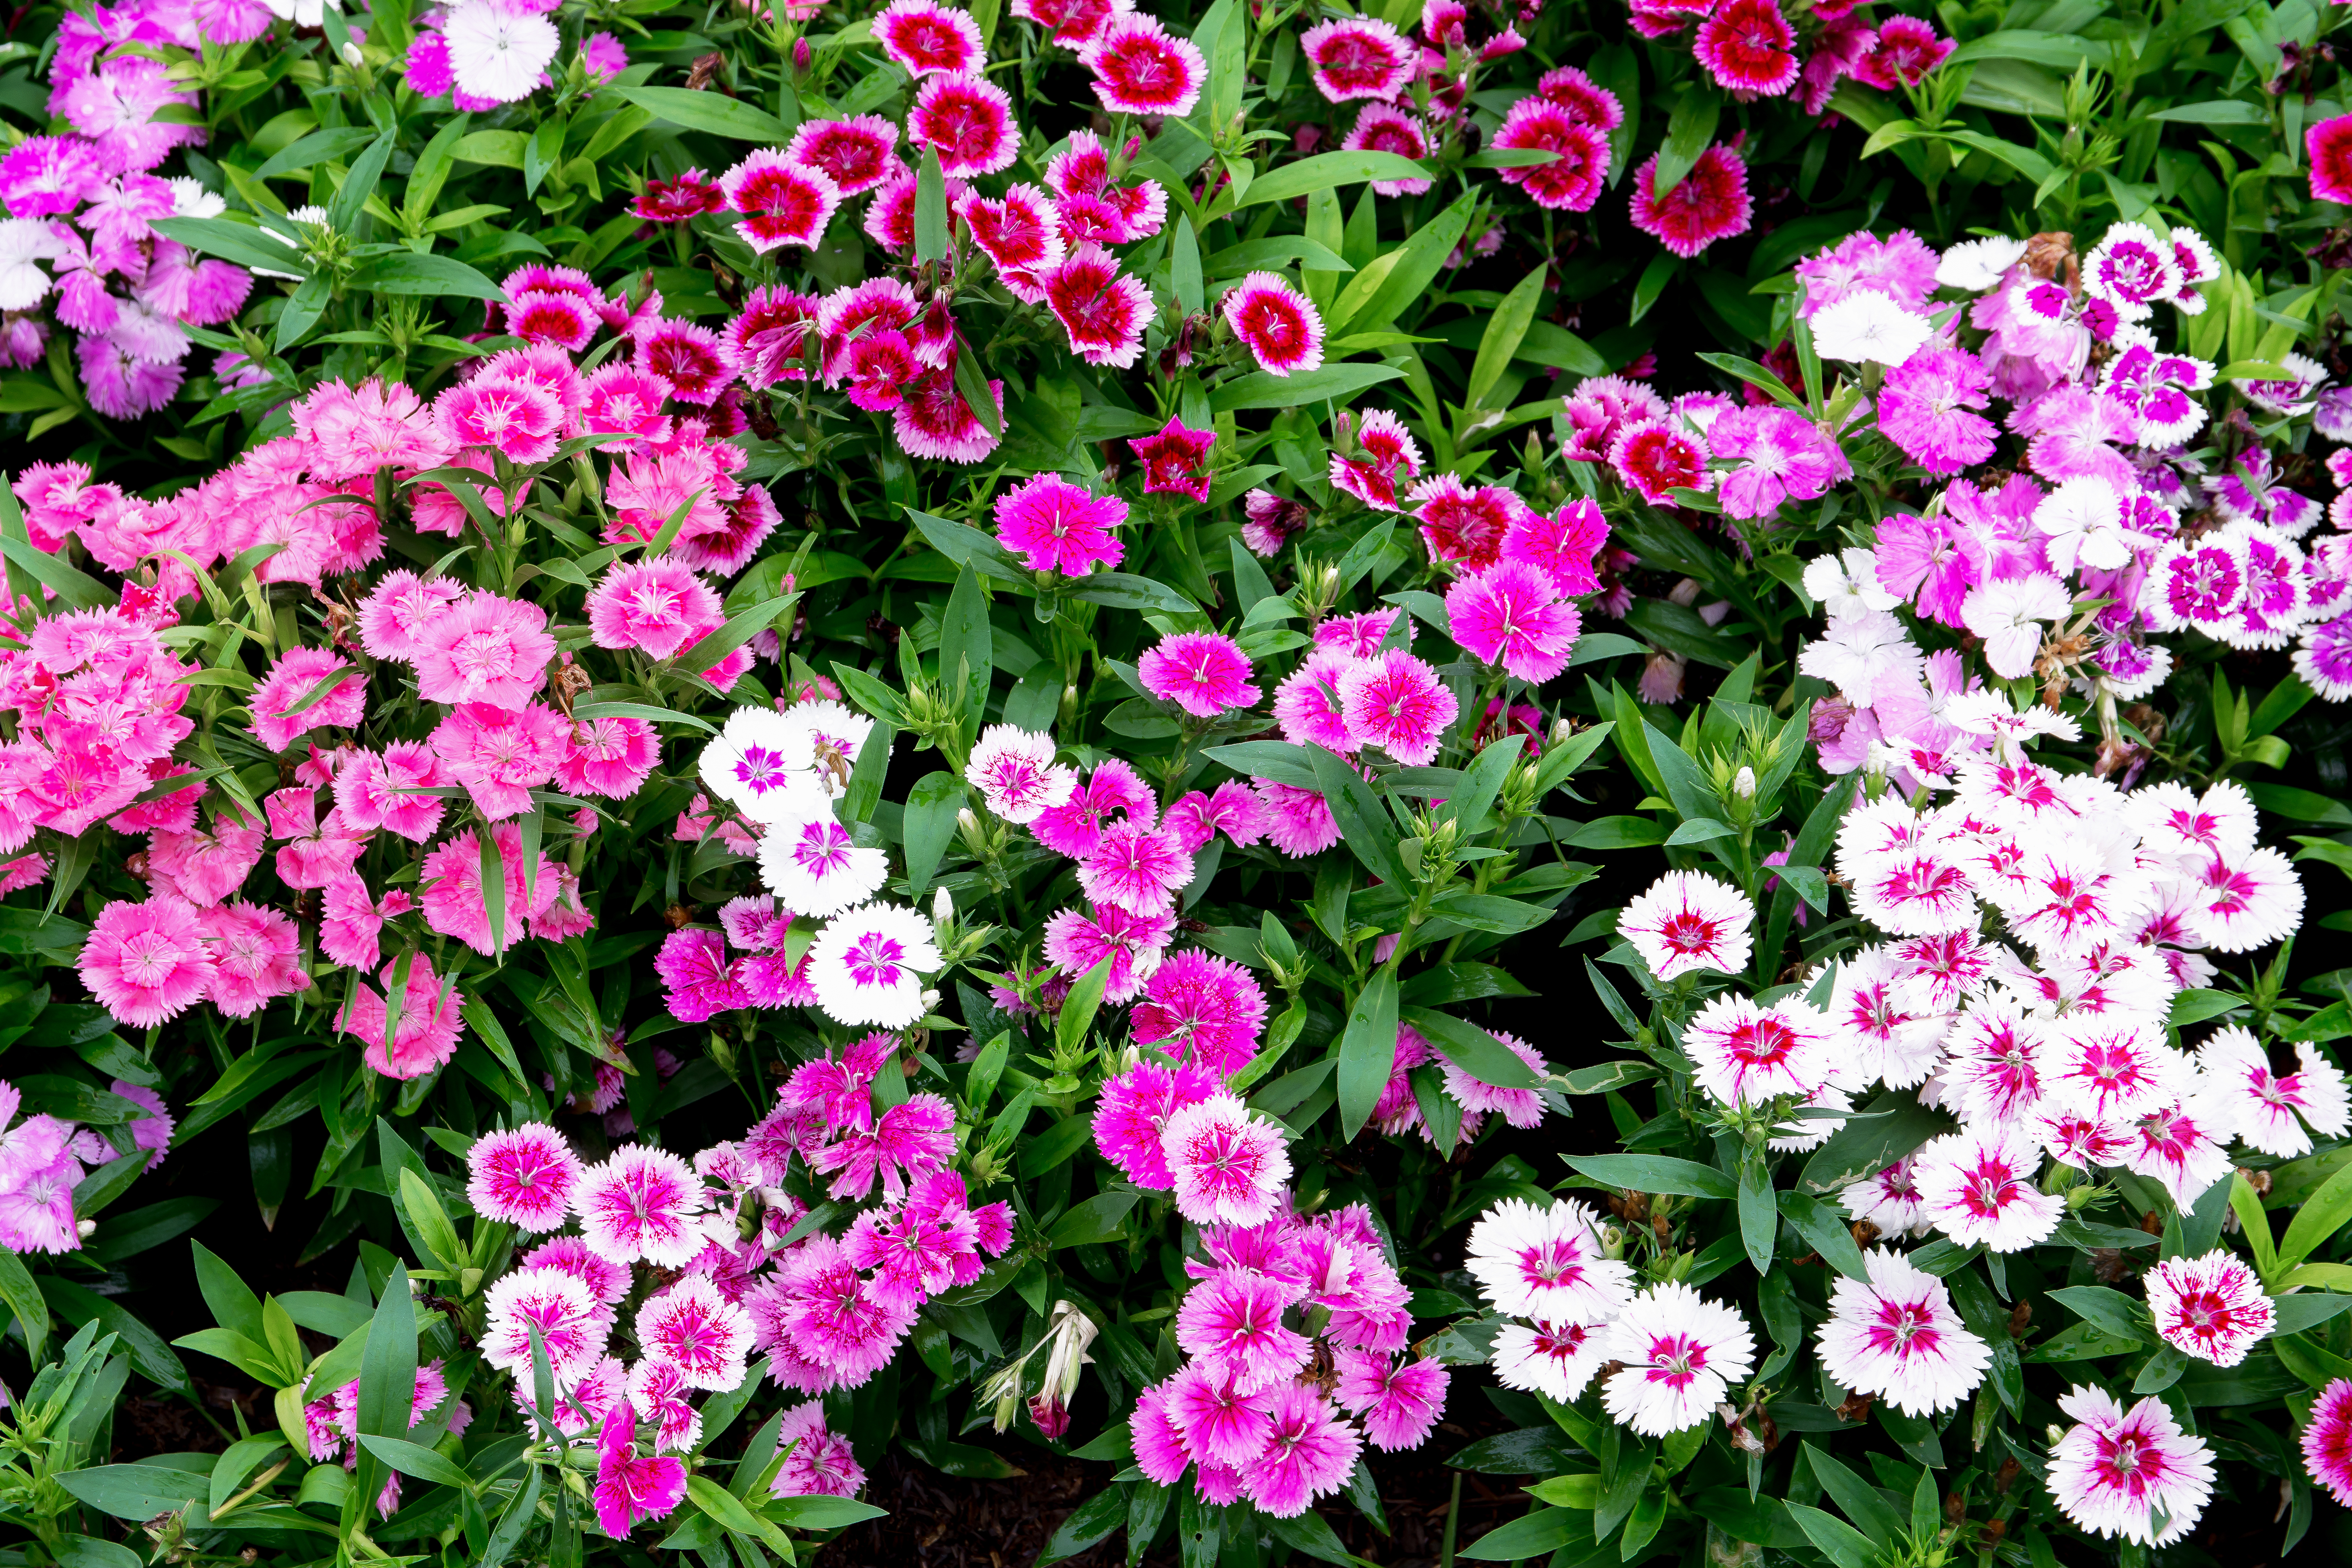 How To Remove Dead Blooms From A Dianthus Home Guides Sf Gate